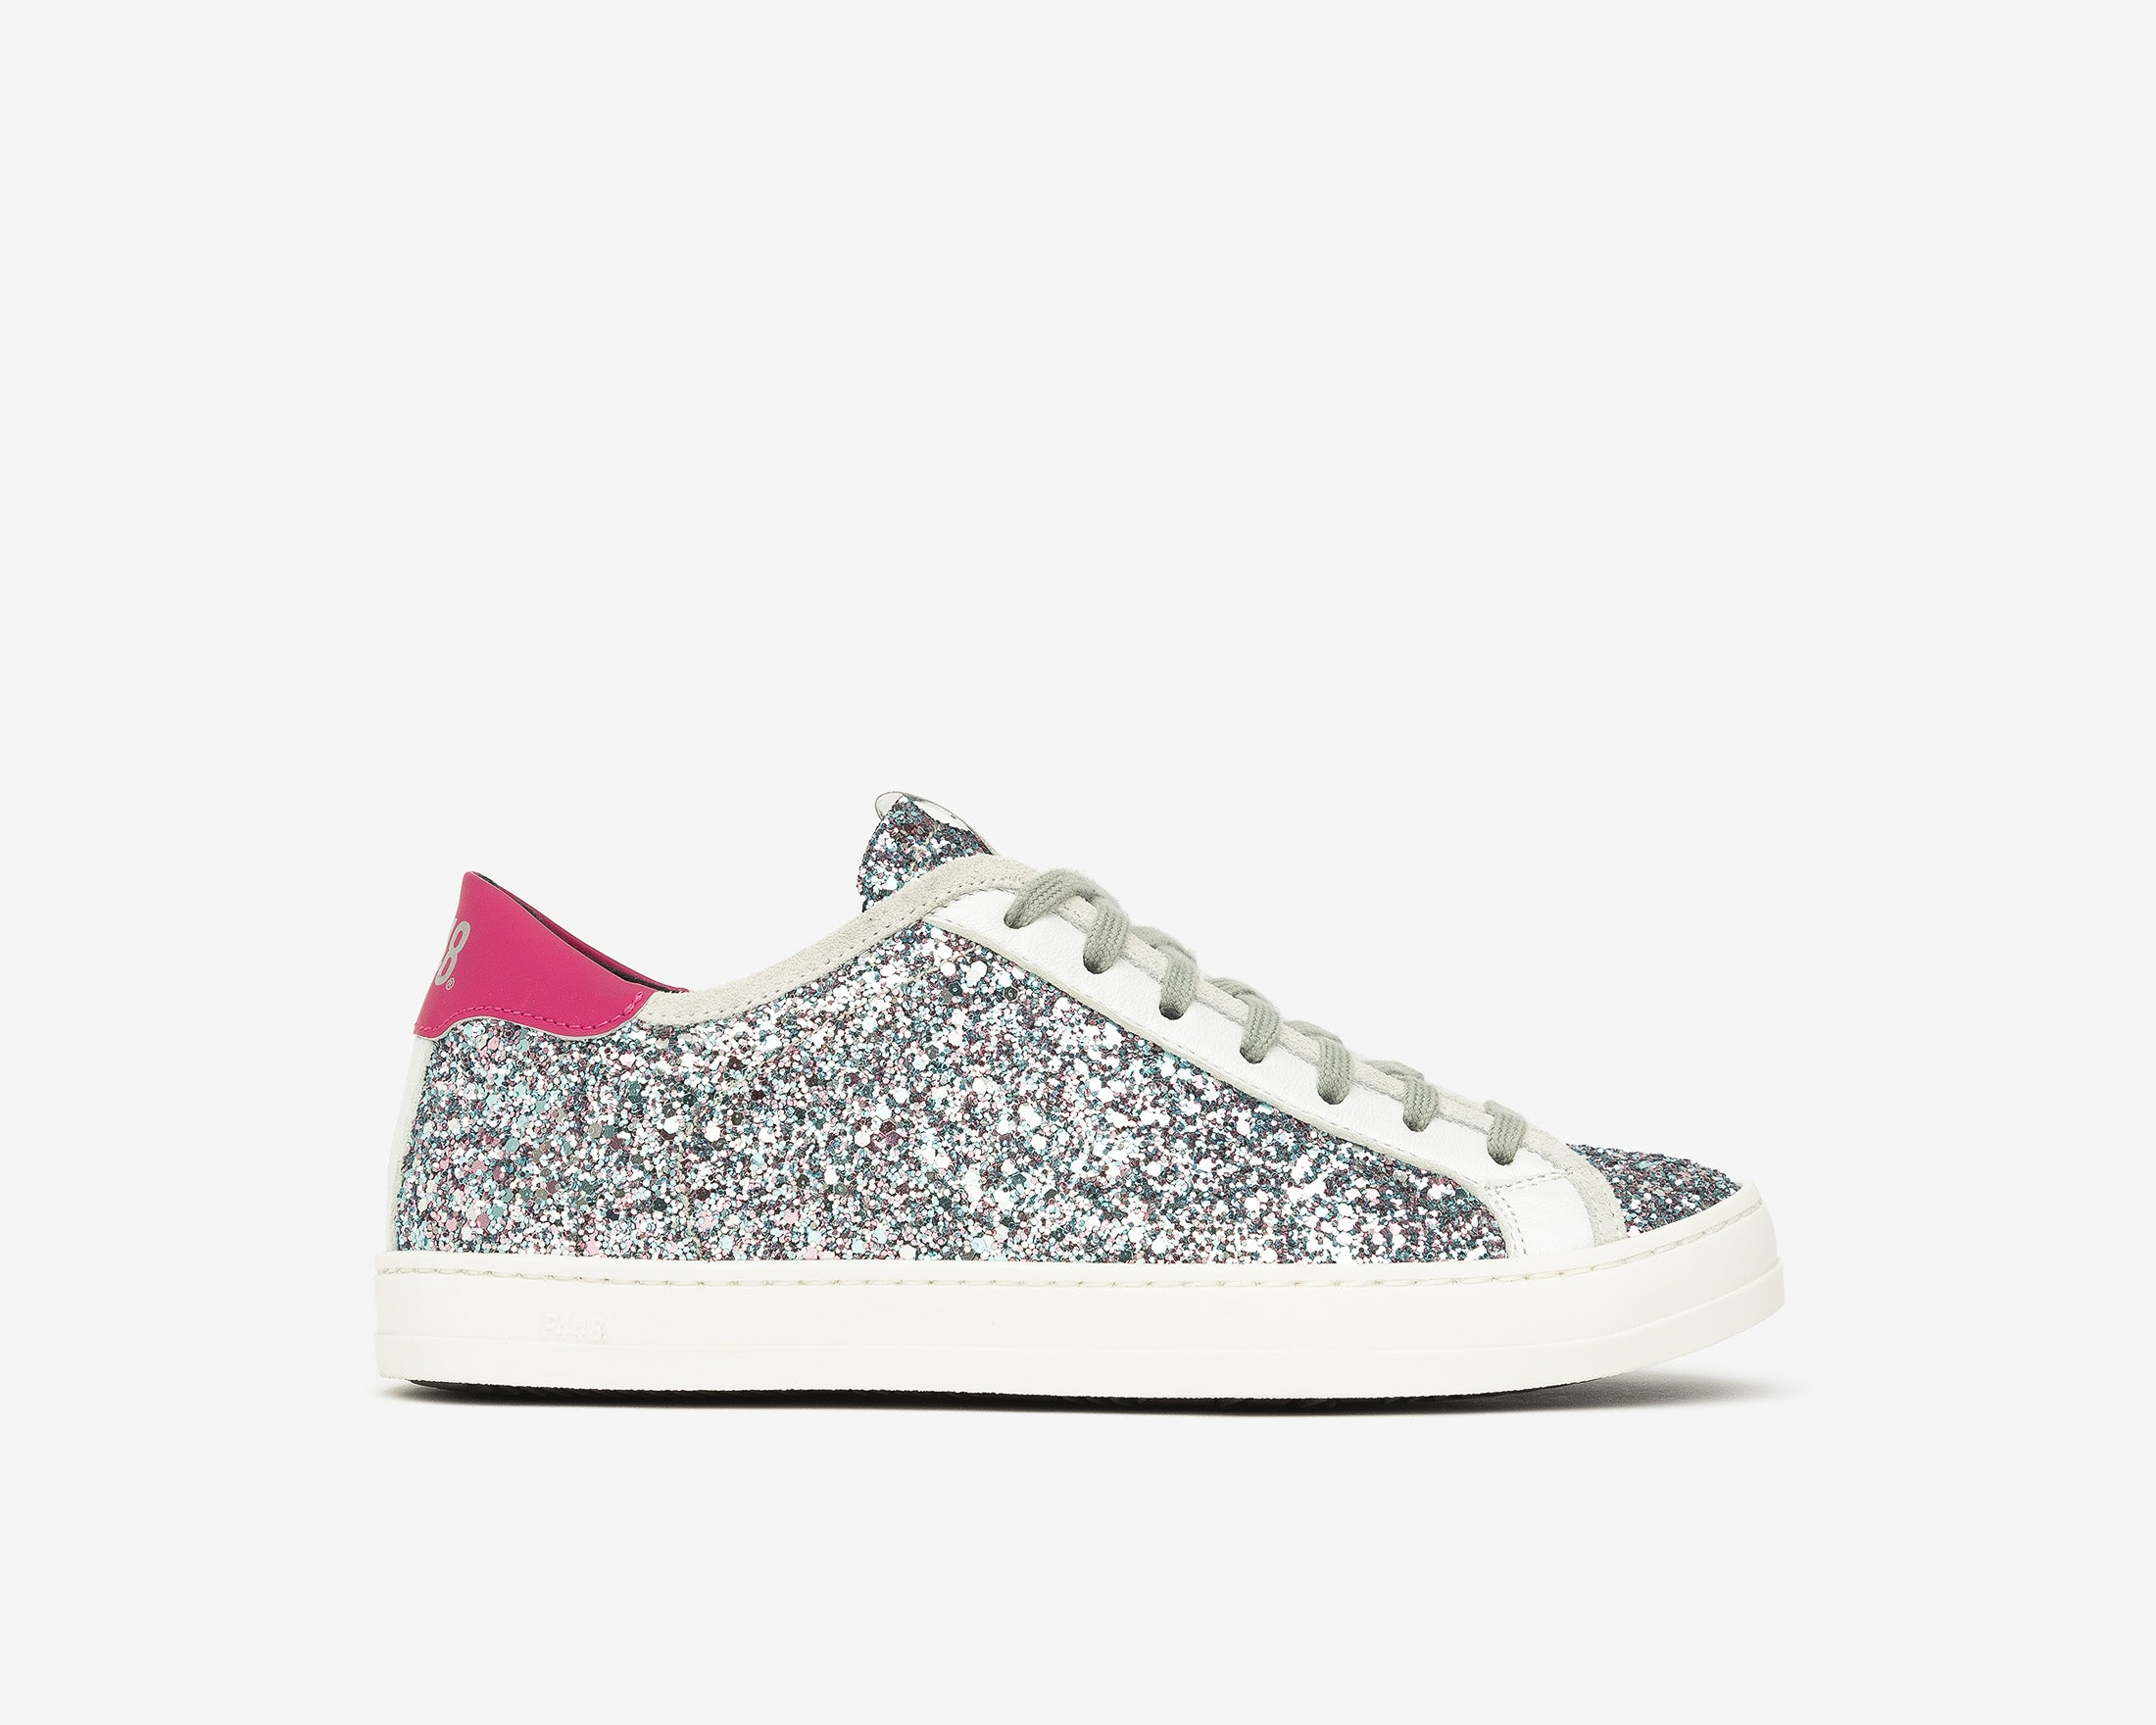 Johnny Low-Top Sneaker in LBL/Glitter - Profile